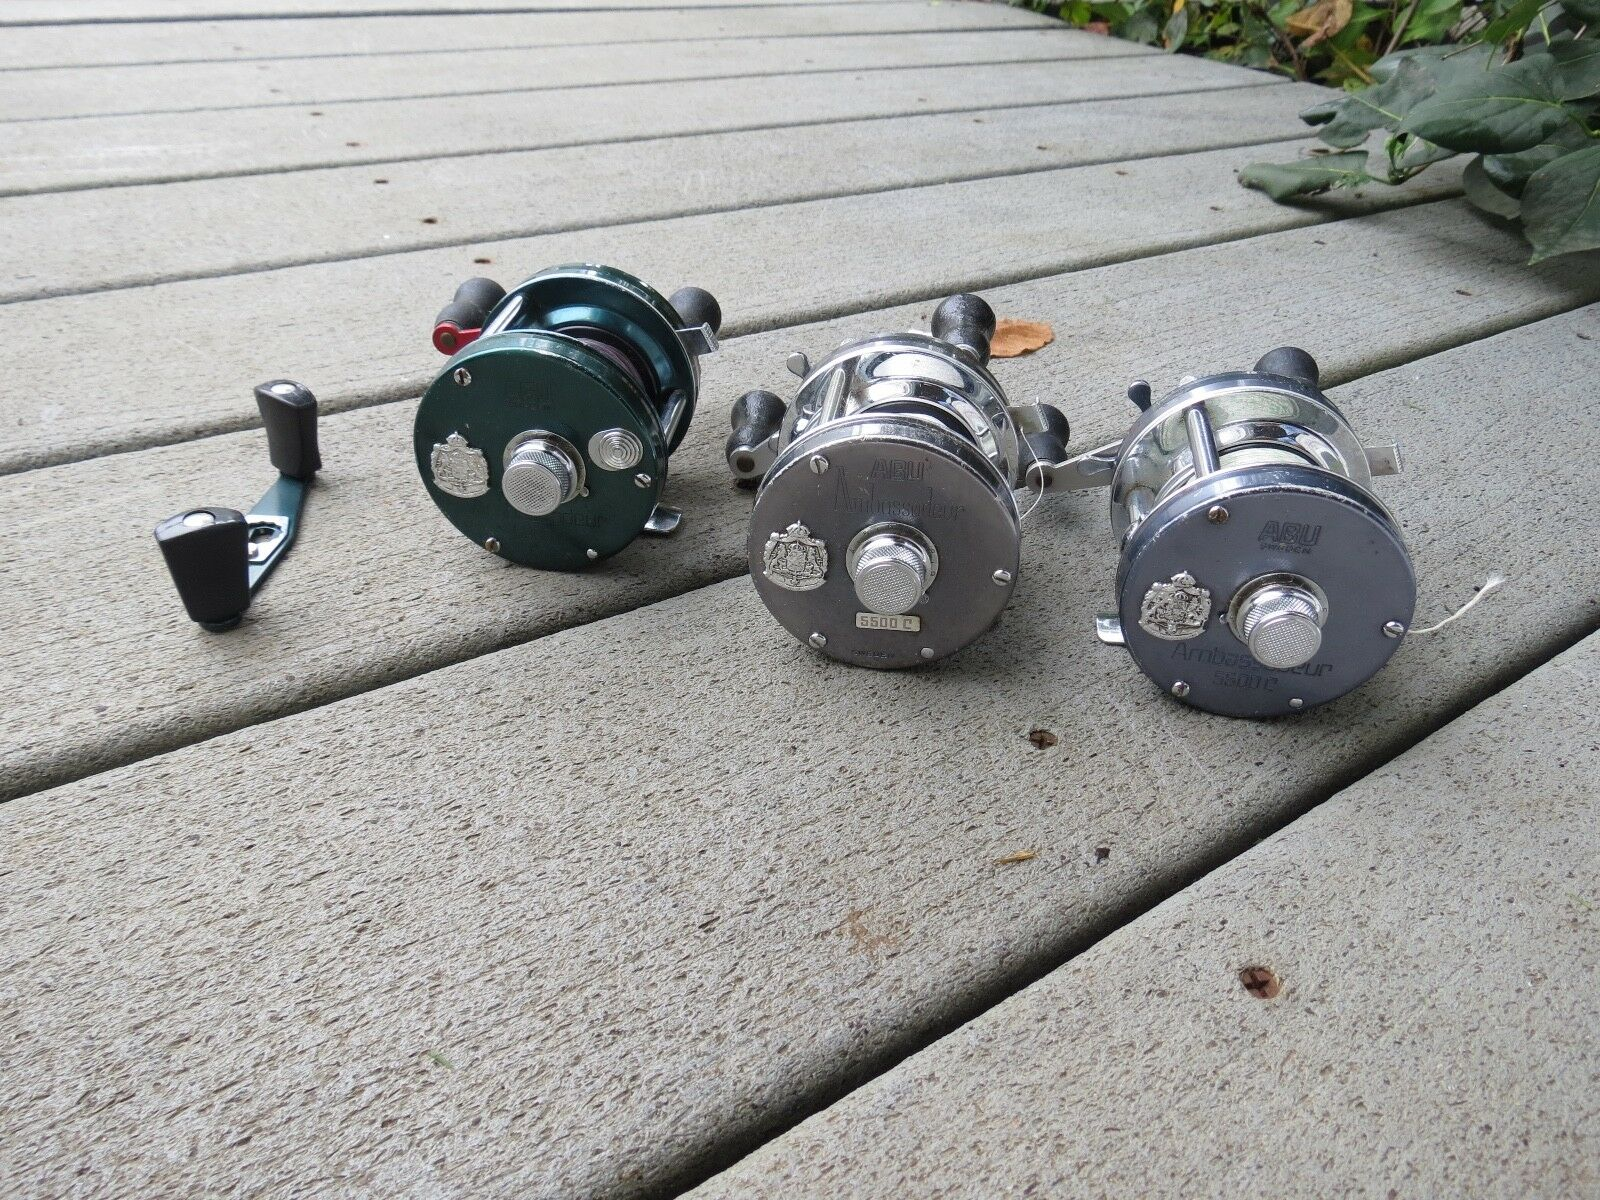 Ambassadeur 5500 C High Speed fishing reels and 5000D (Lot)